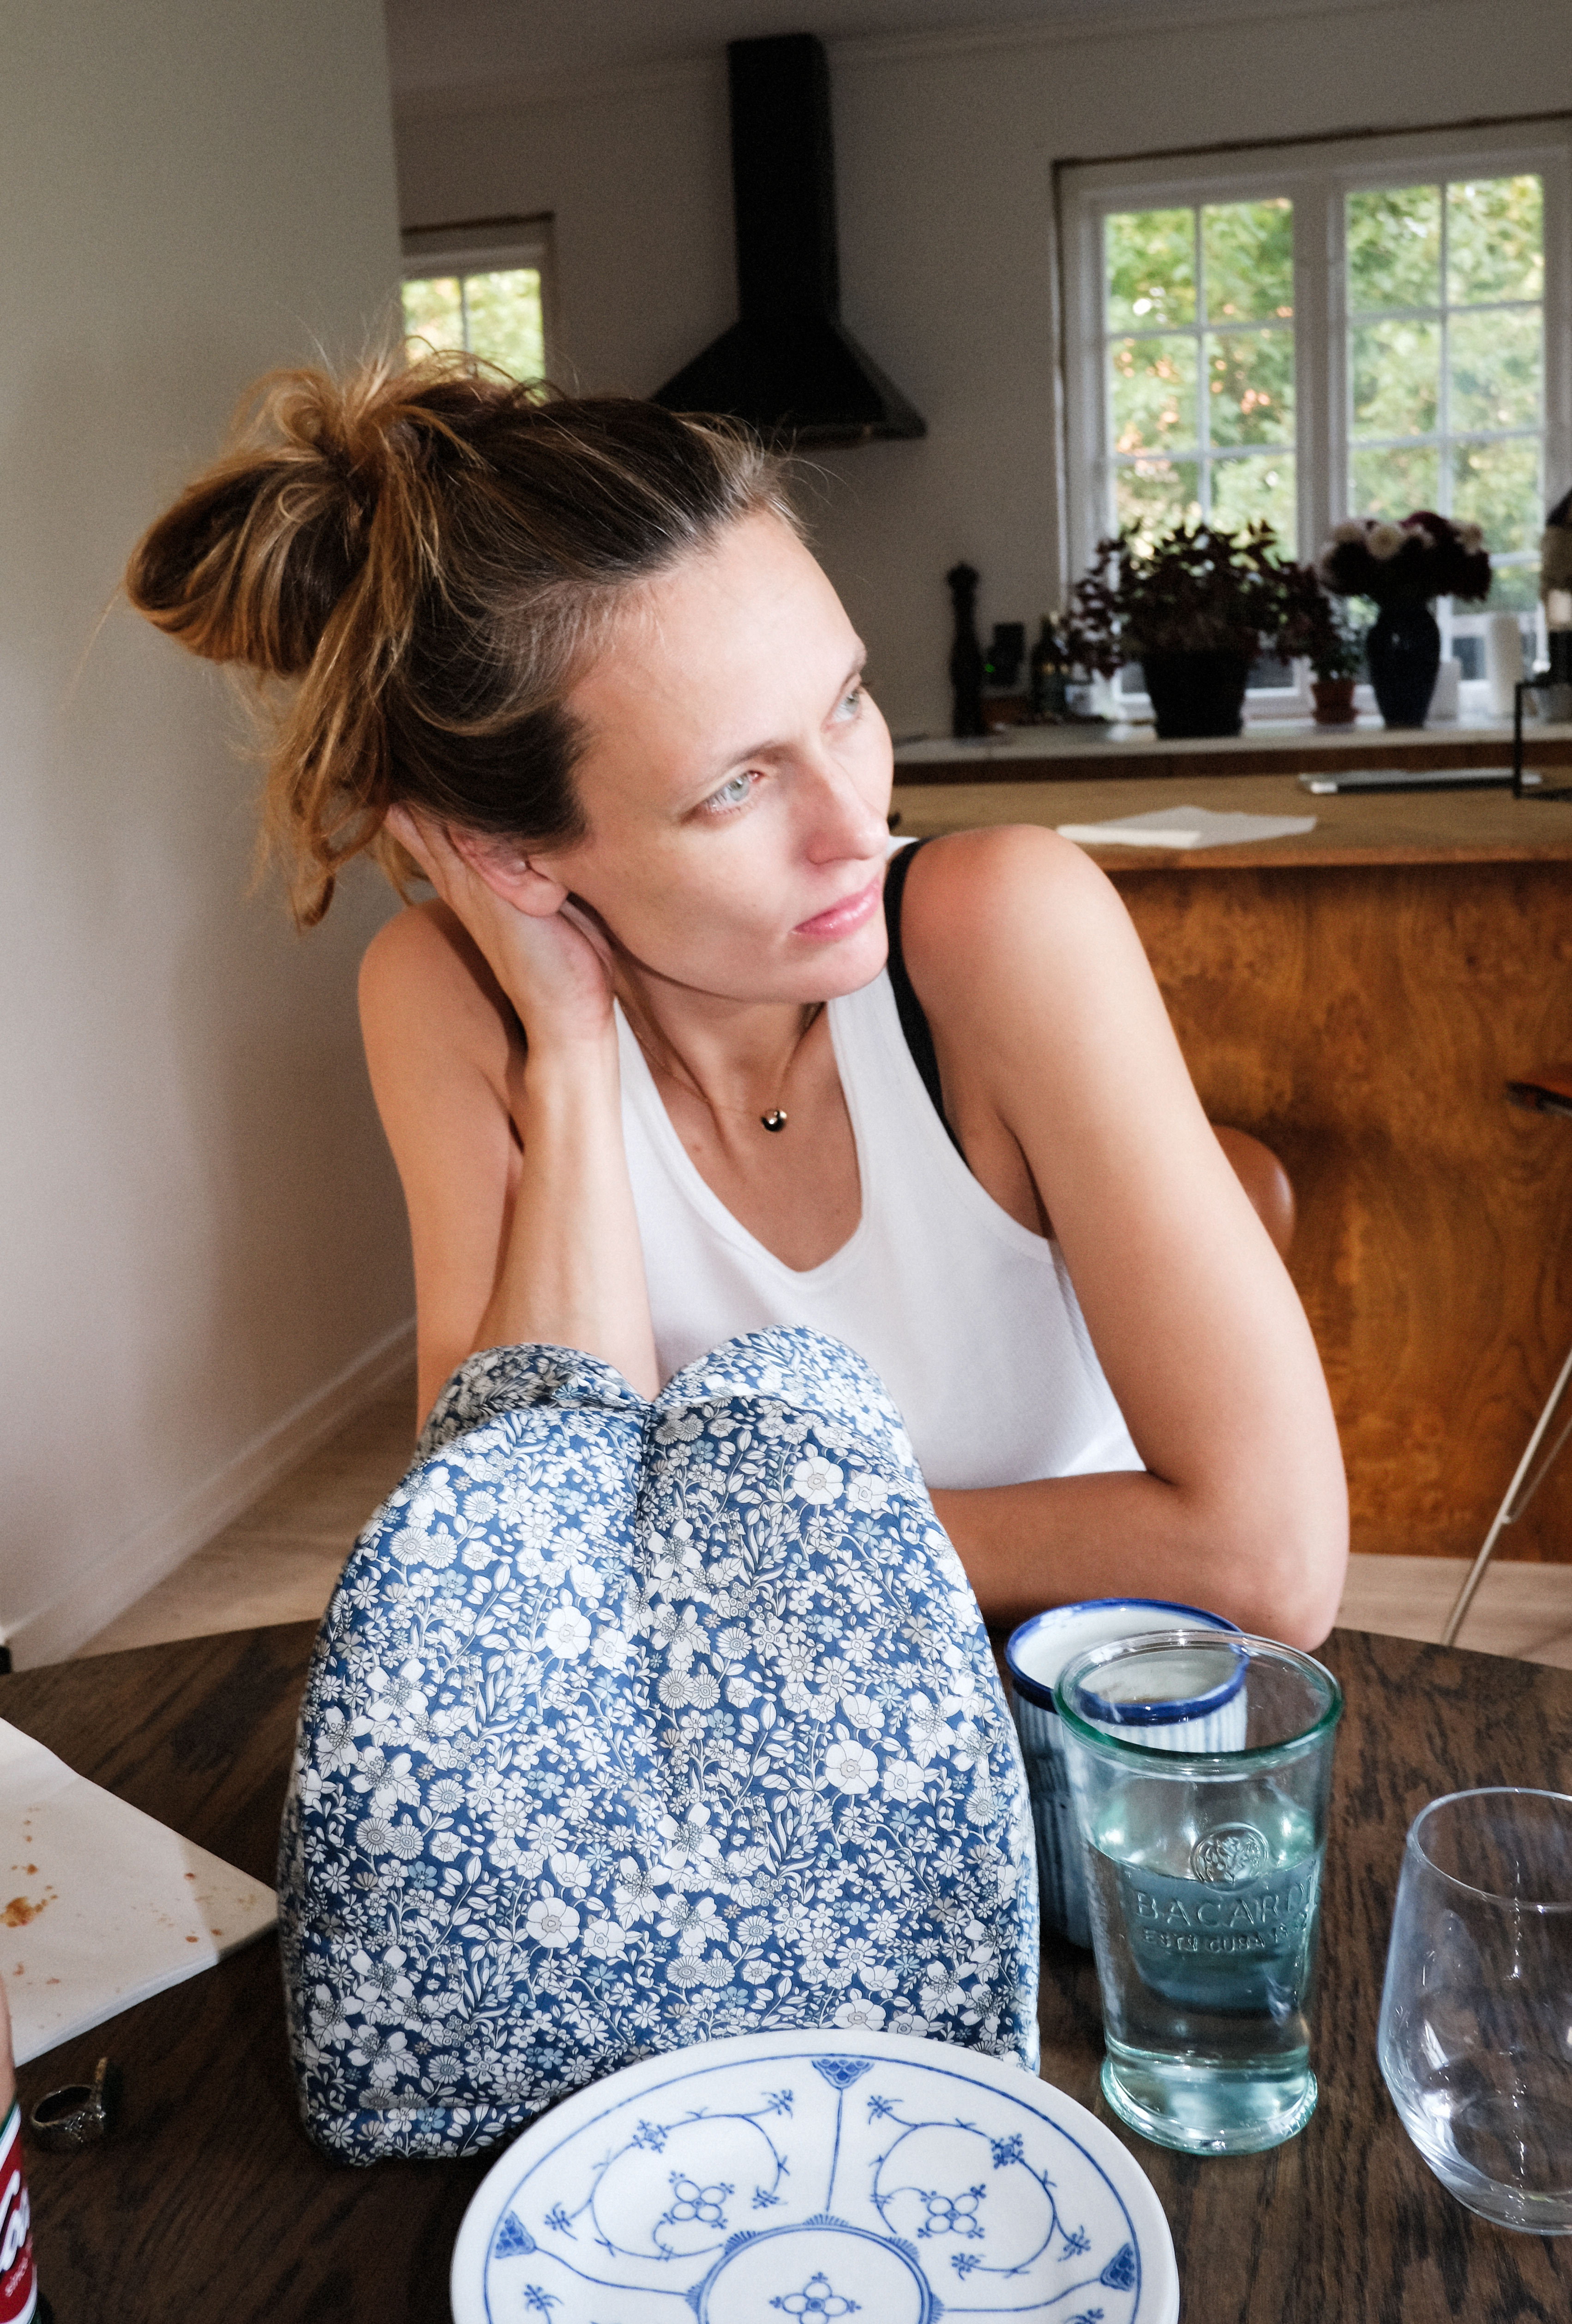 To_the_moon_honey_vibe_dabelsteen_baby_bump_gravid_med_Liv_winther_bea_fagerholt_